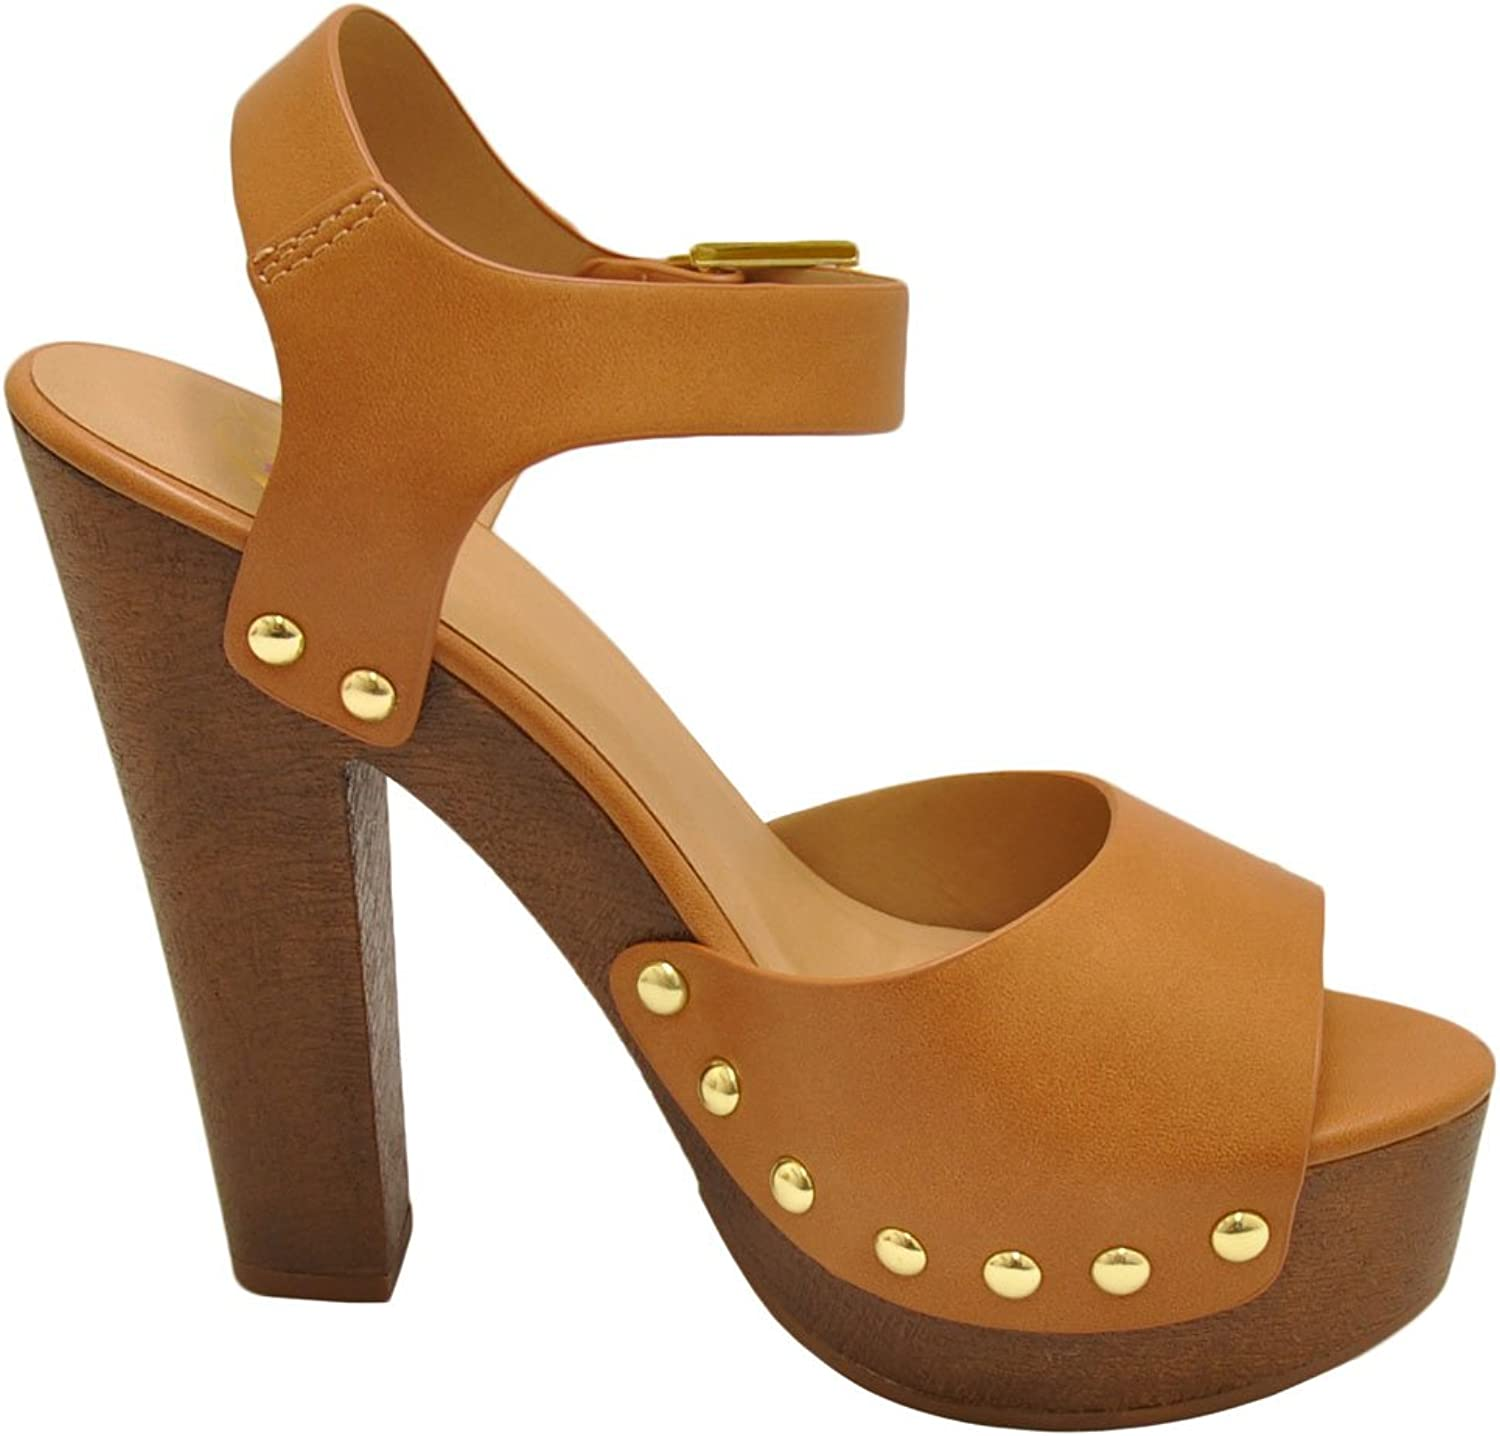 Delicious Mally S Women's Studded Open Toe Chunky Heels